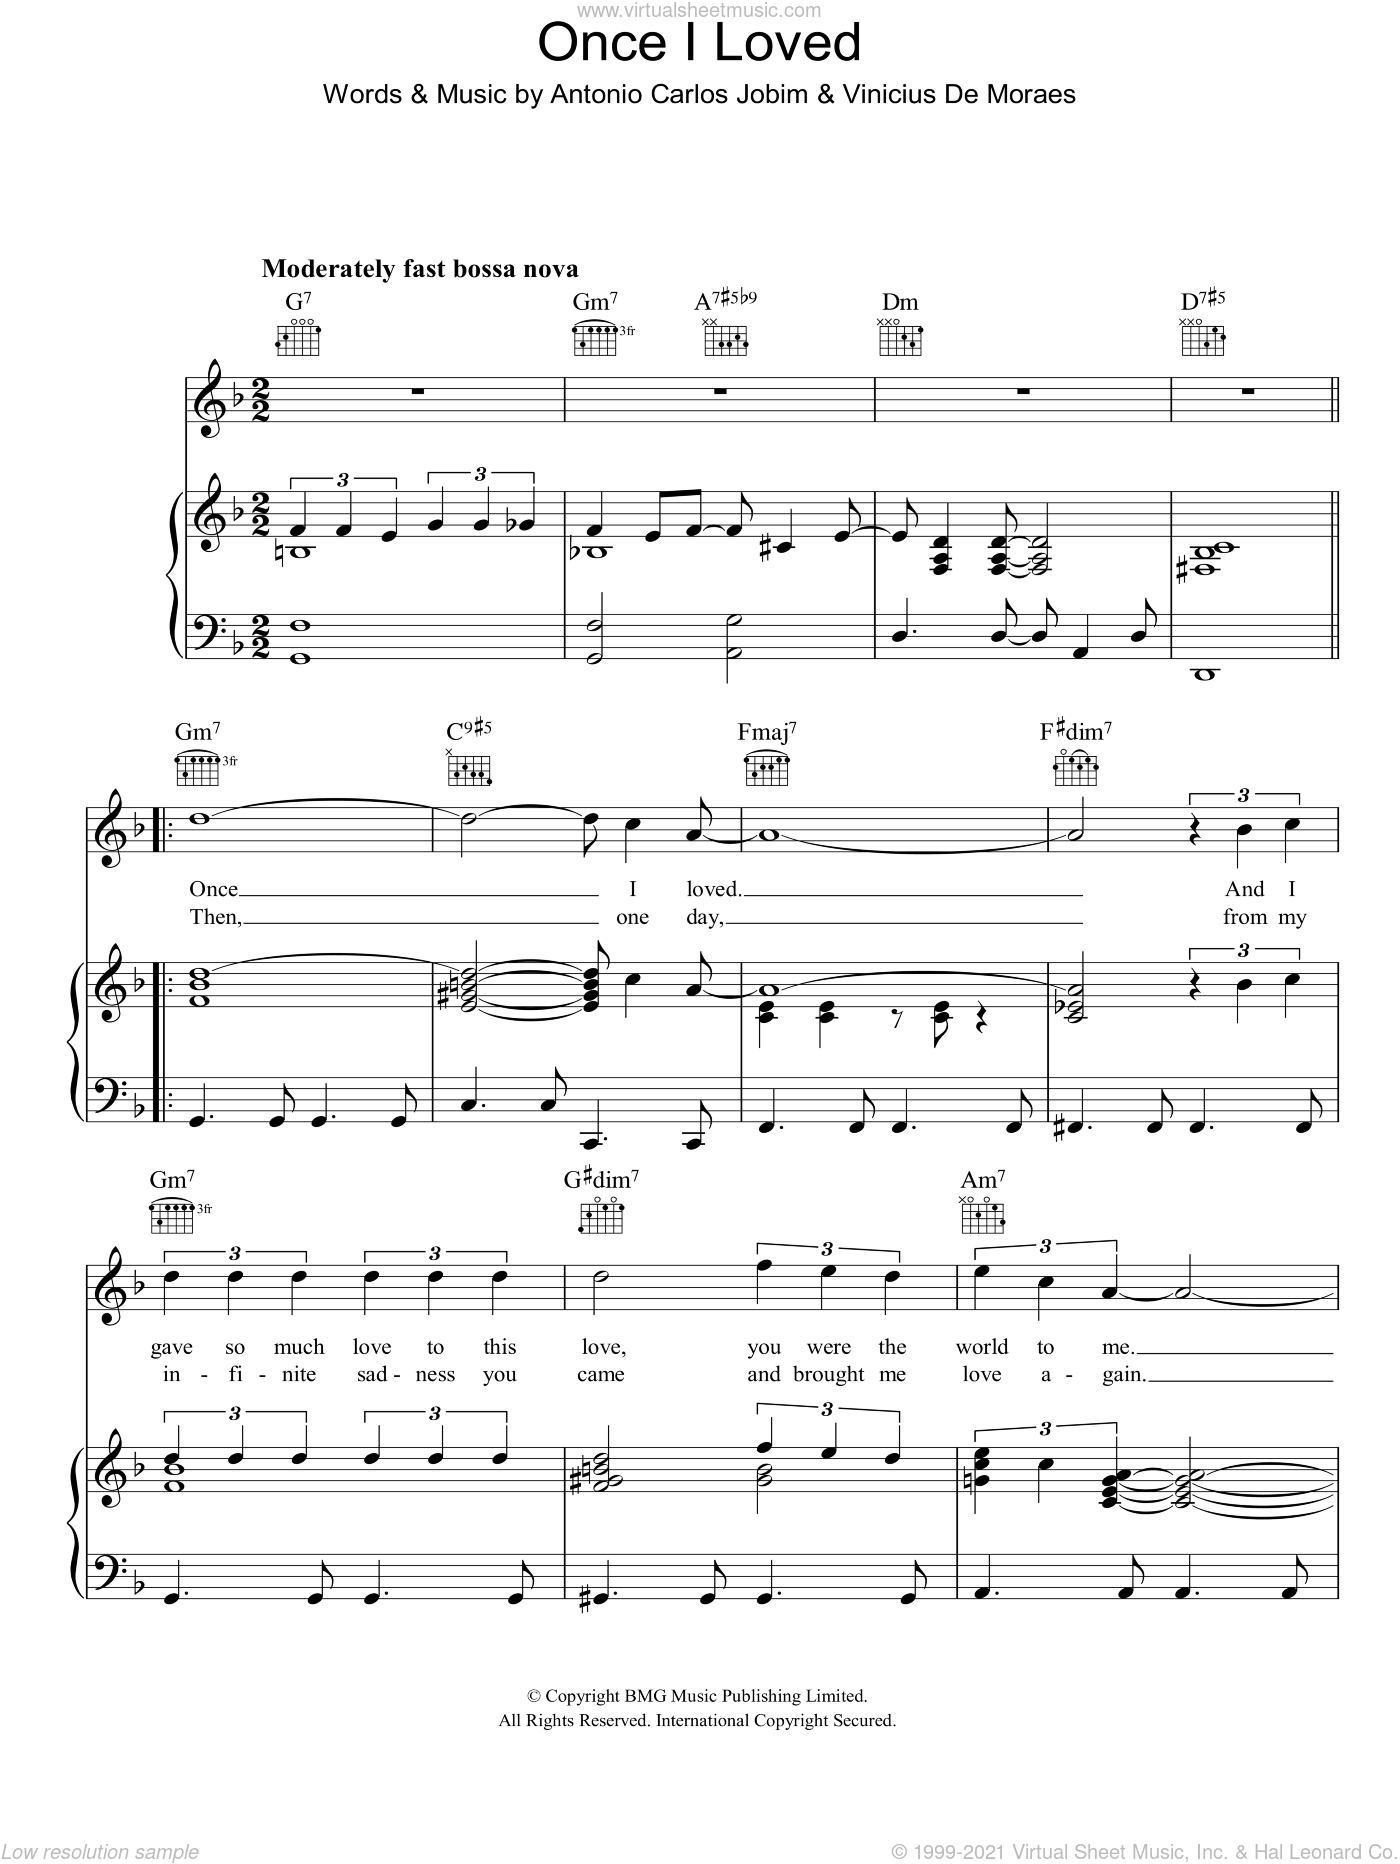 Once I Loved sheet music for voice, piano or guitar by Antonio Carlos Jobim and Vinicius de Moraes, intermediate skill level